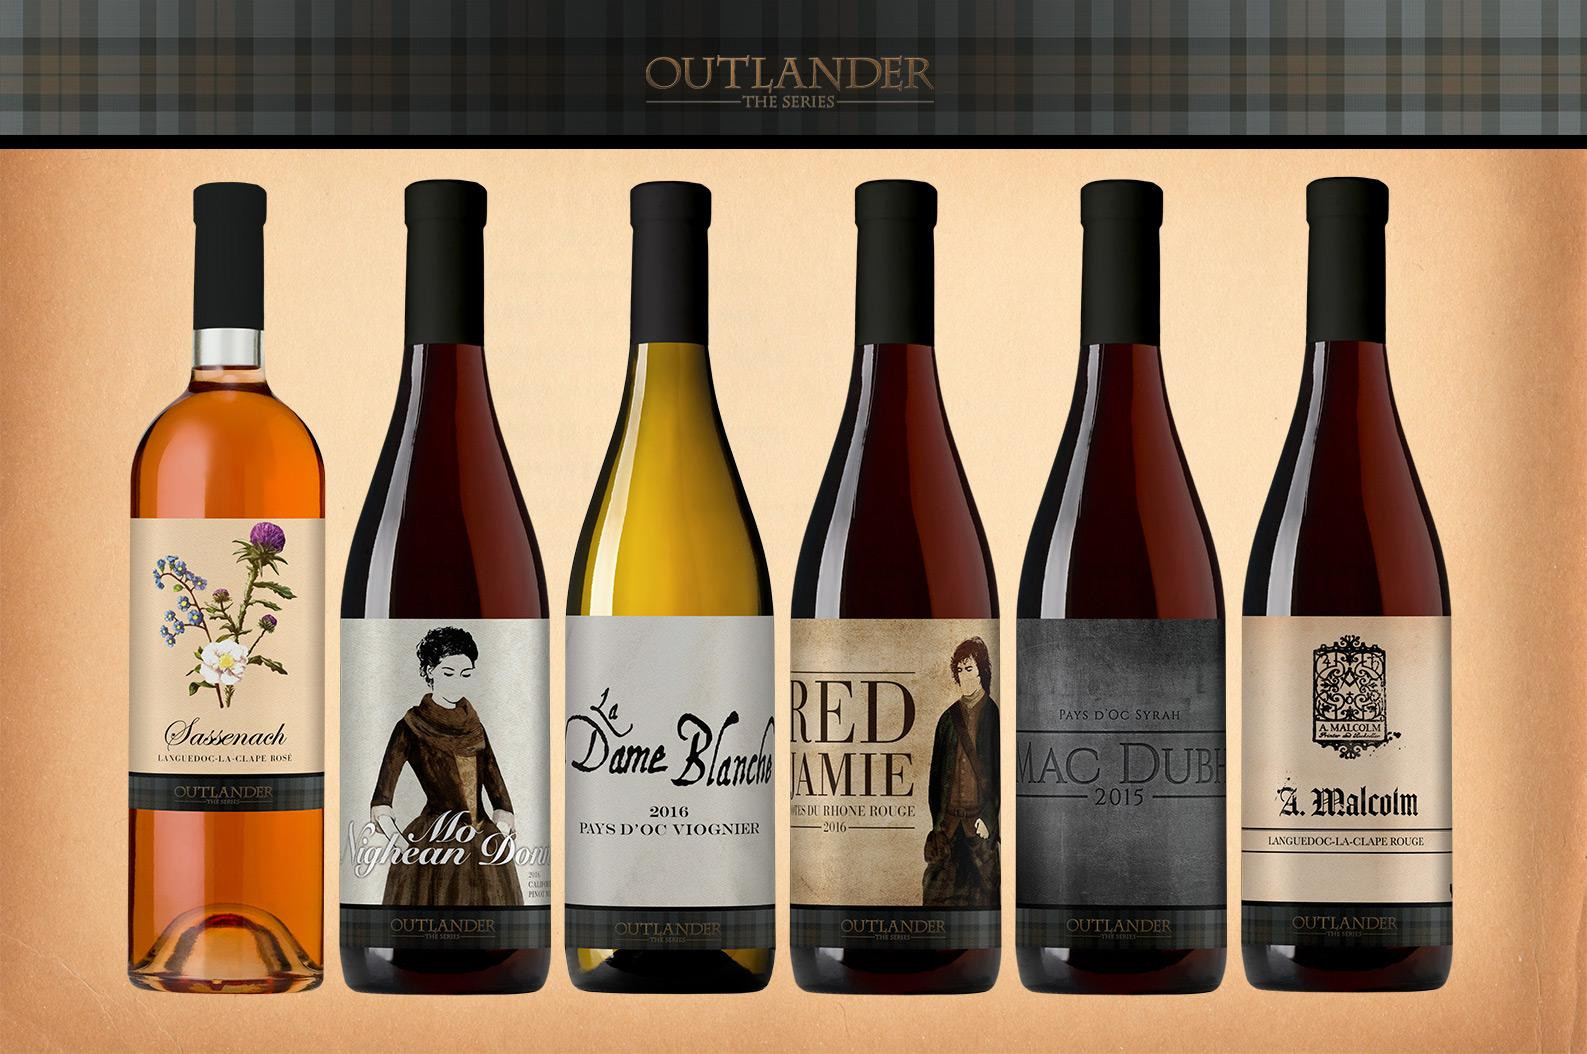 Best ideas about Outlander Gift Ideas . Save or Pin 'Outlander' Gift Ideas 11 Christmas Presents For Jamie Now.